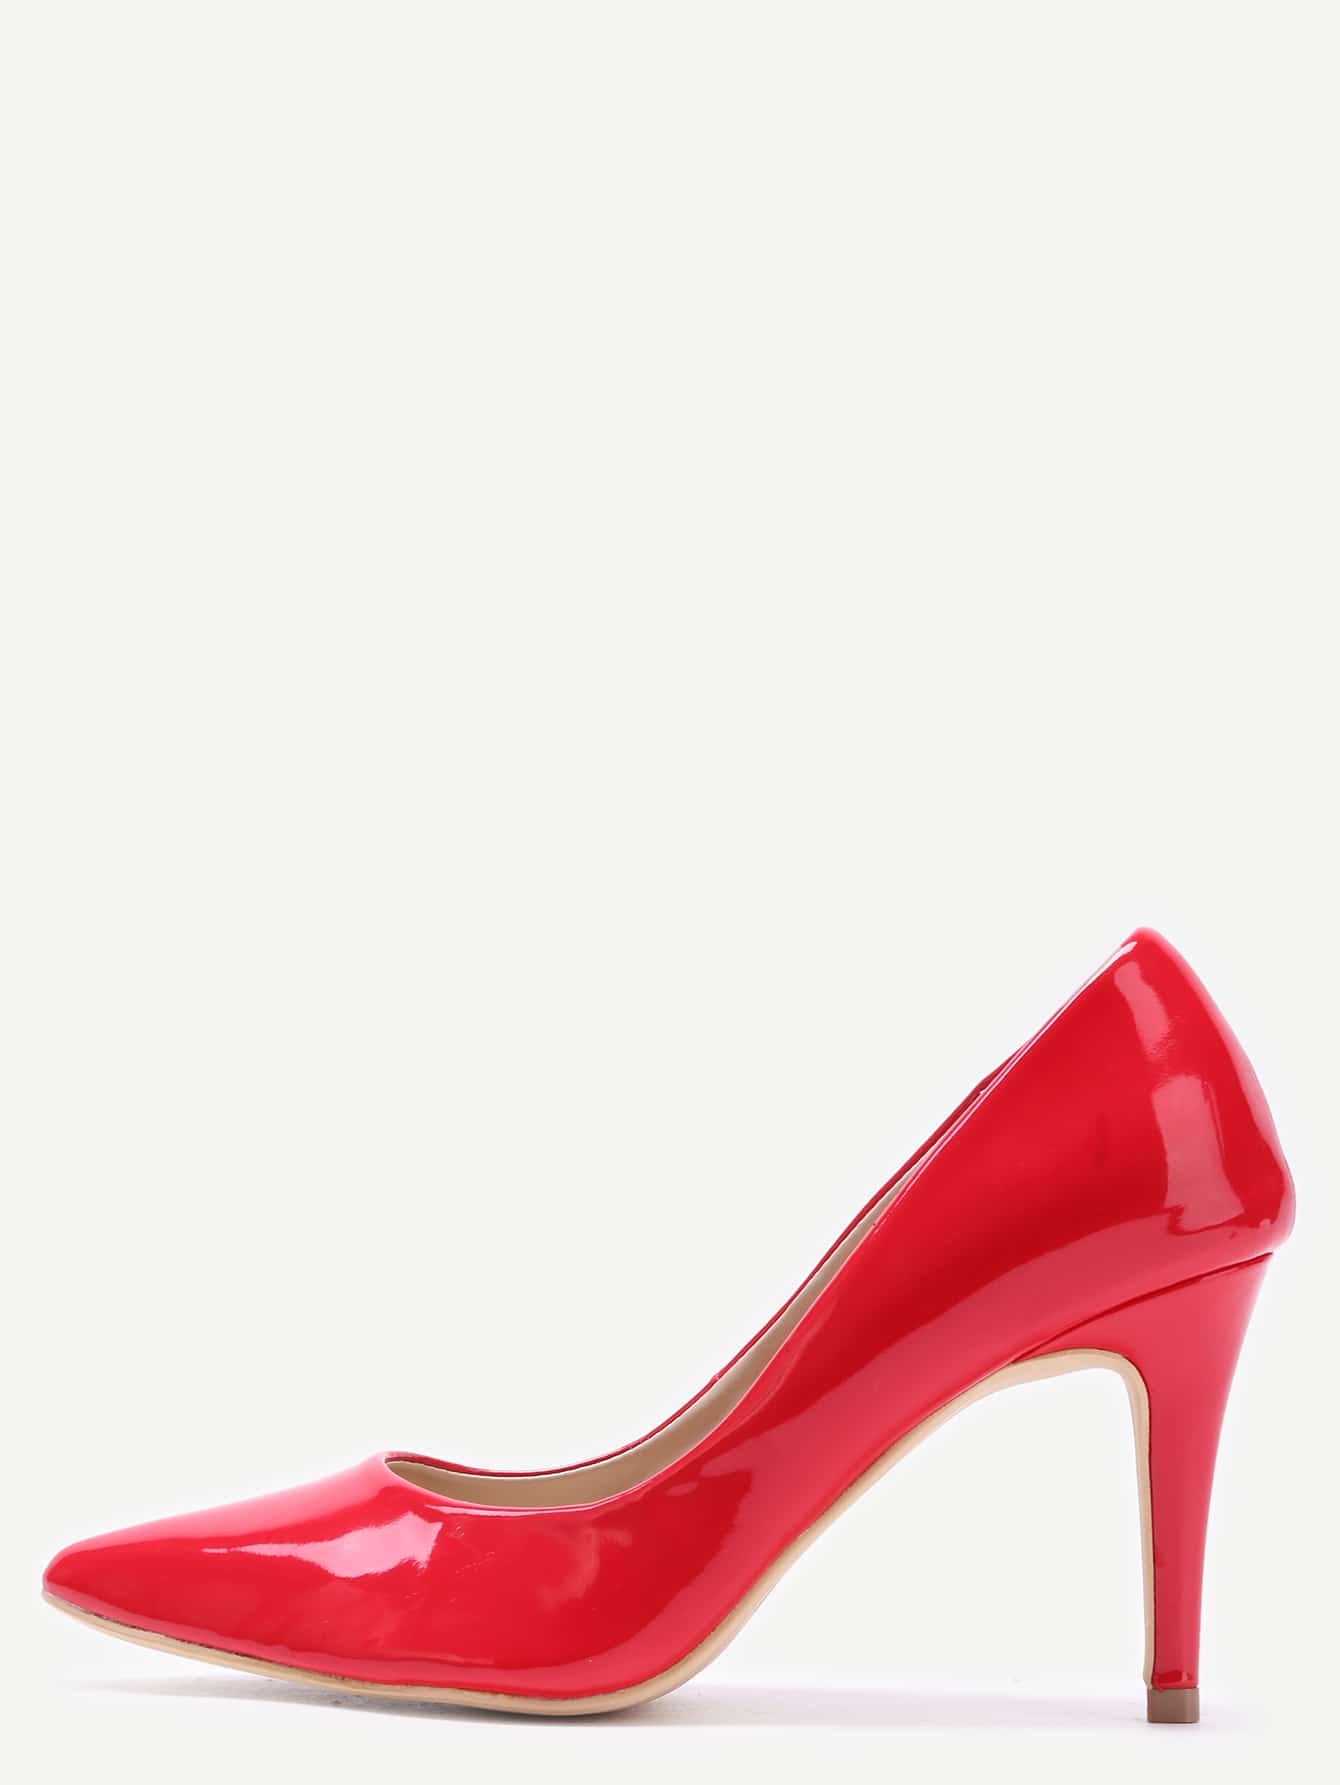 Red Faux Patent Leather Pointed Toe PumpsRed Faux Patent Leather Pointed Toe Pumps<br><br>color: Red<br>size: US8,US9